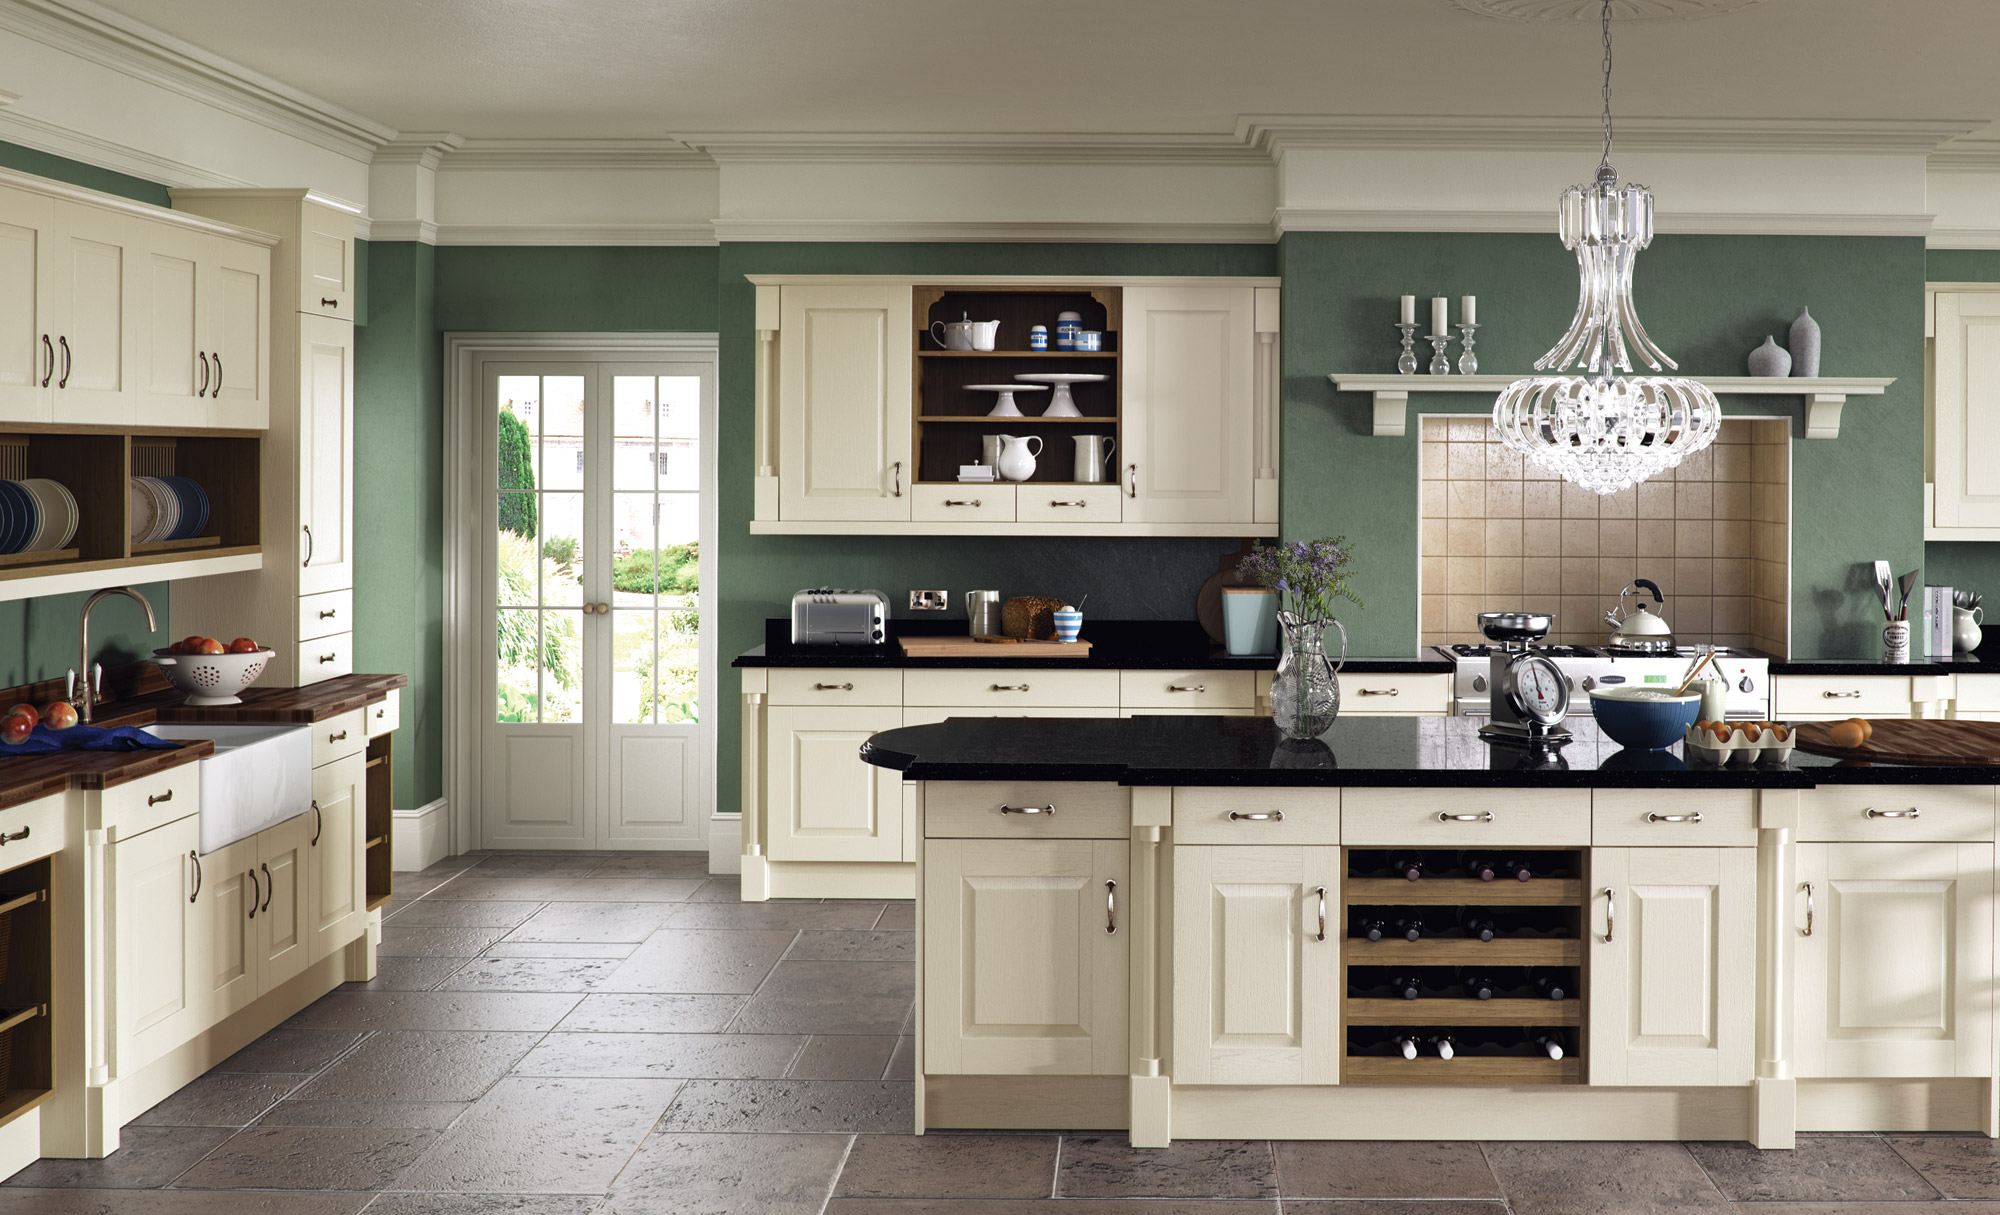 http://www.ianwoodbespokeinteriors.co.uk/wp-content/uploads/2017/01/classic-traditional-country-windsor-classic-painted-ivory-kitchen-hero-1.jpg